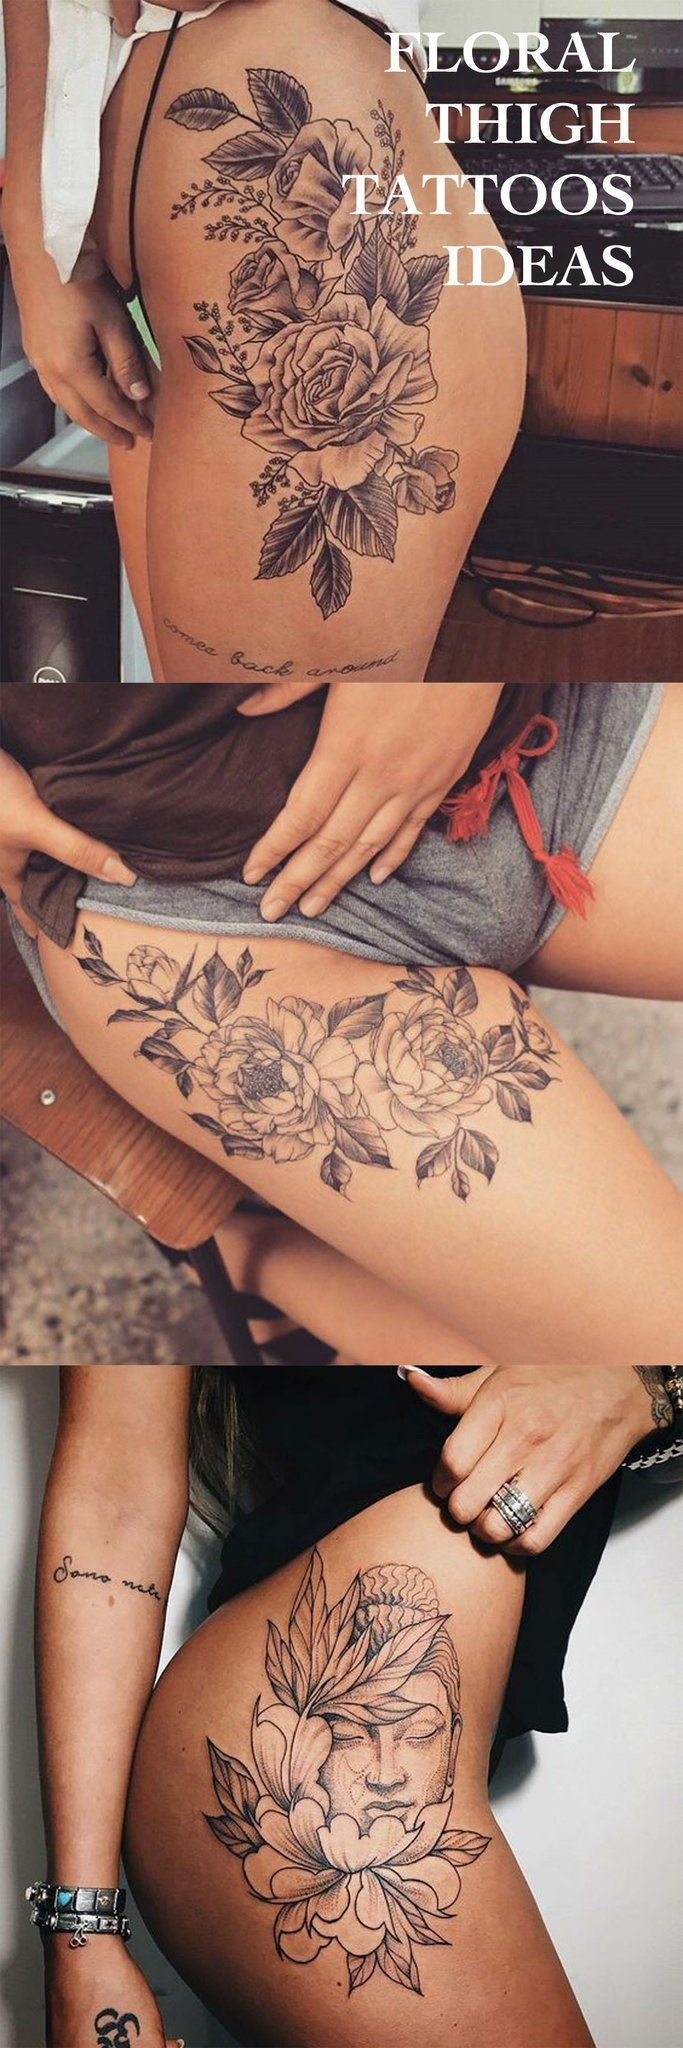 Floral Thigh Tattoo Ideas at MyBodiArt.com - Flower Buddha Black and White Tat Browse through over 7,500+ high quality unique tattoo designs from the world's best tattoo artists!